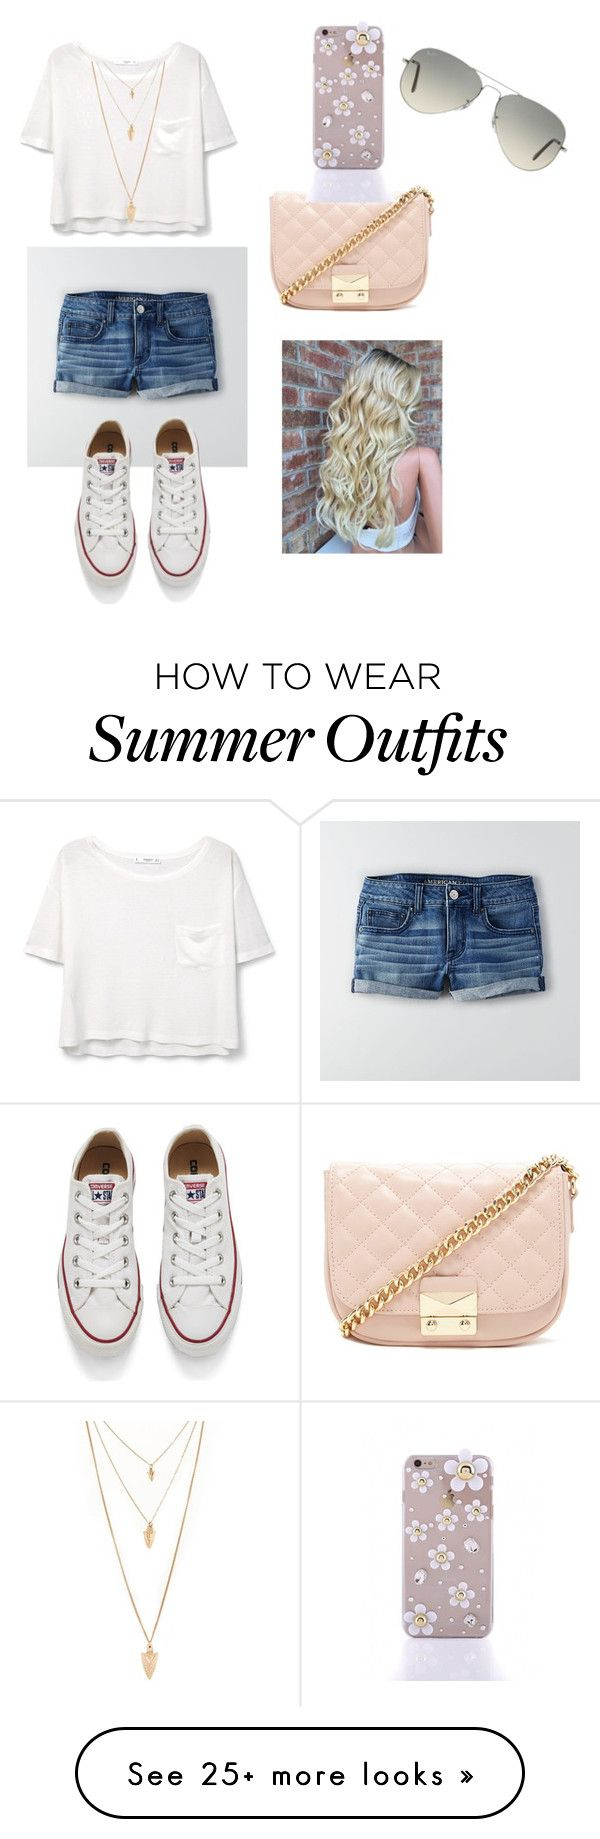 """""""Summer Outfit ☀️"""" by makenalindsay on Polyvore featuring American Eagle Outfitters, MANGO, Forever 21, Converse and Ray-Ban"""